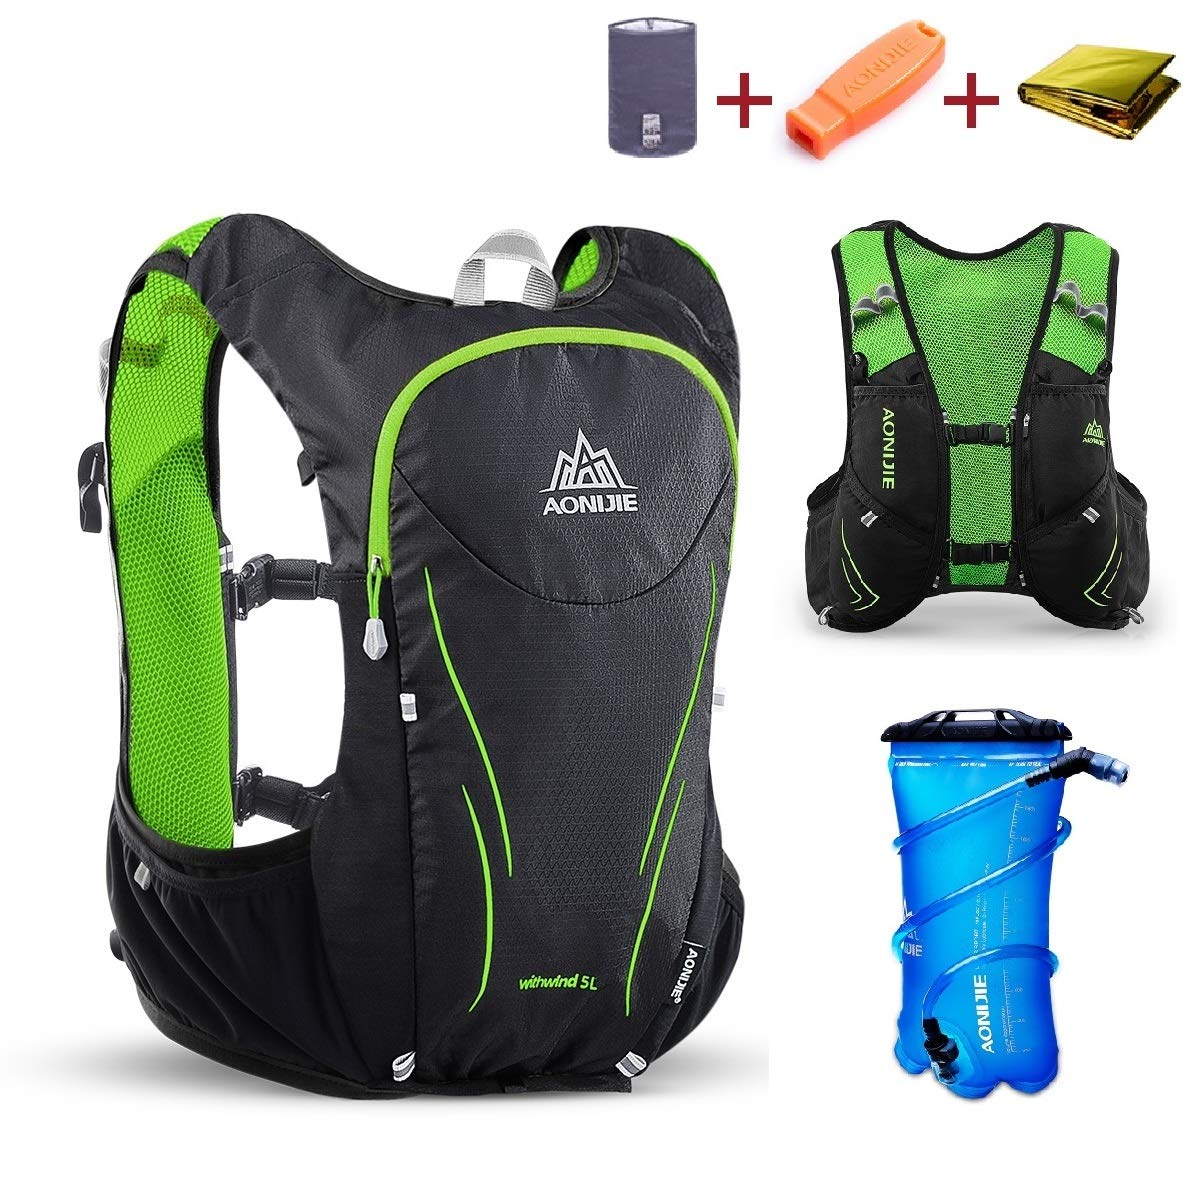 Triwonder Hydration Pack Backpack 5L Lightweight Deluxe Marathoner Running Race Hydration Vest (Black & Green - with 2L TPU Water Bladder, M/L - 34.6-39.4in)